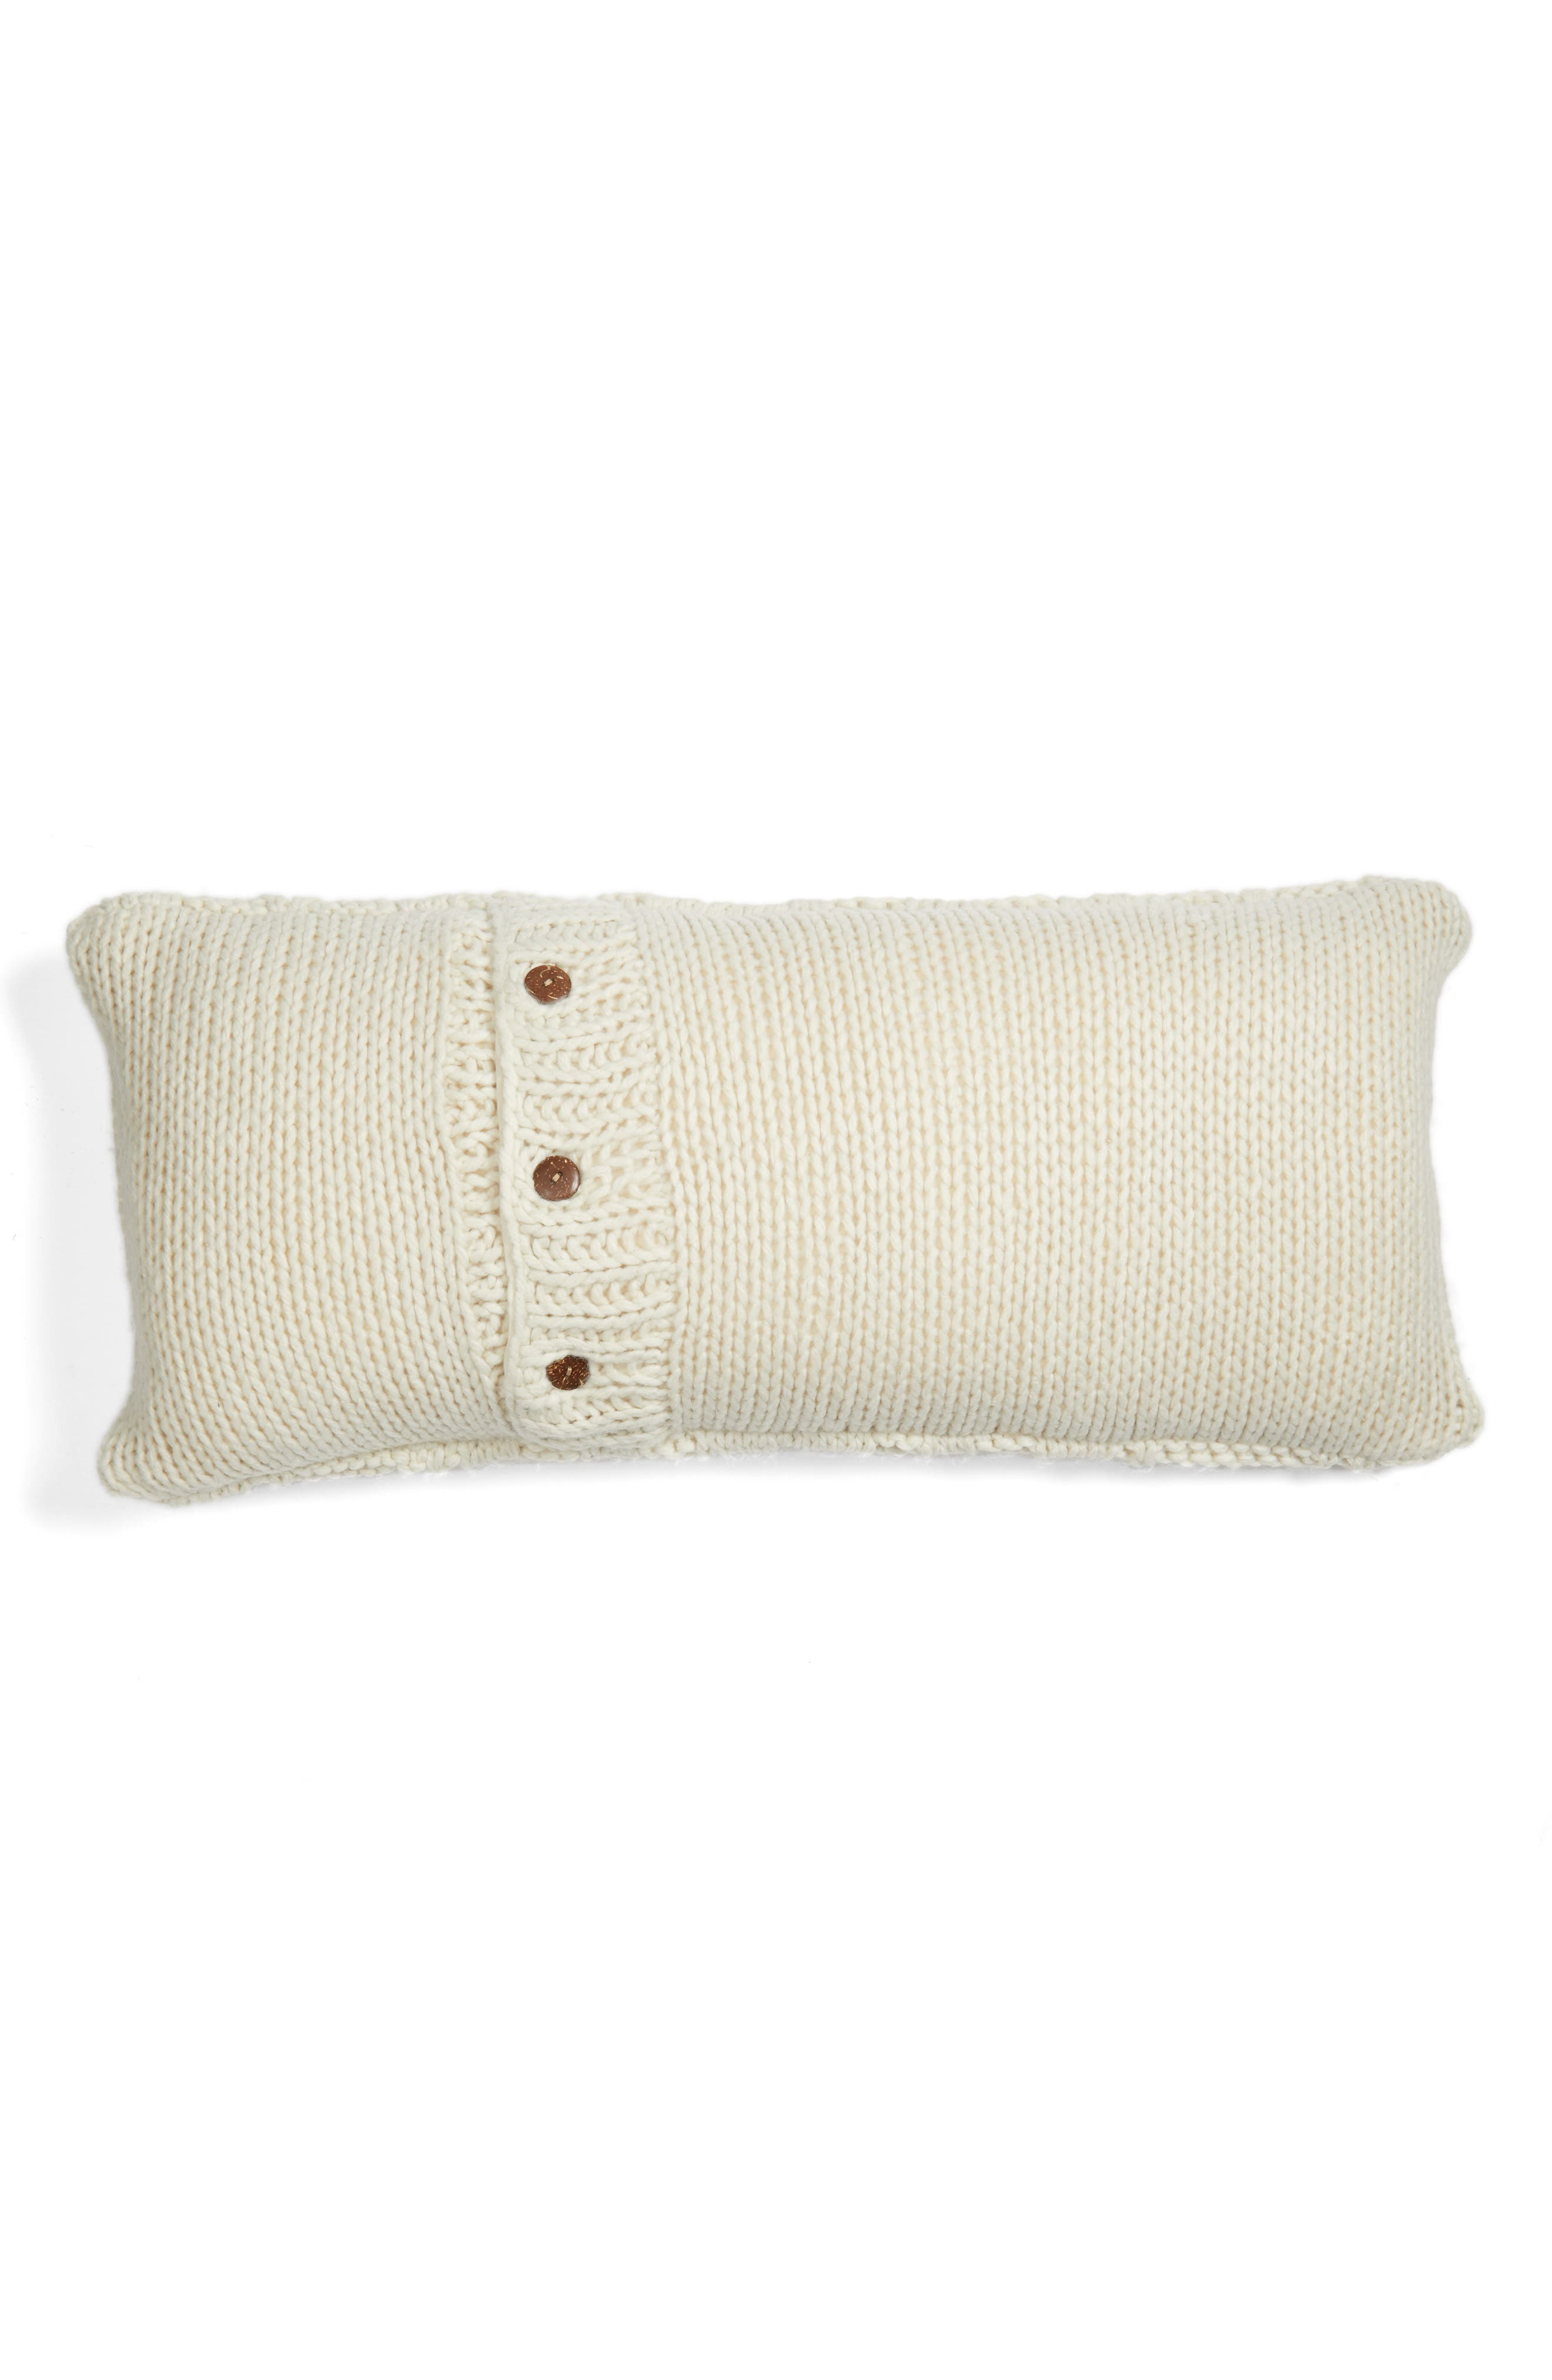 Cable Knit Accent Pillow,                             Main thumbnail 1, color,                             Ivory Dove